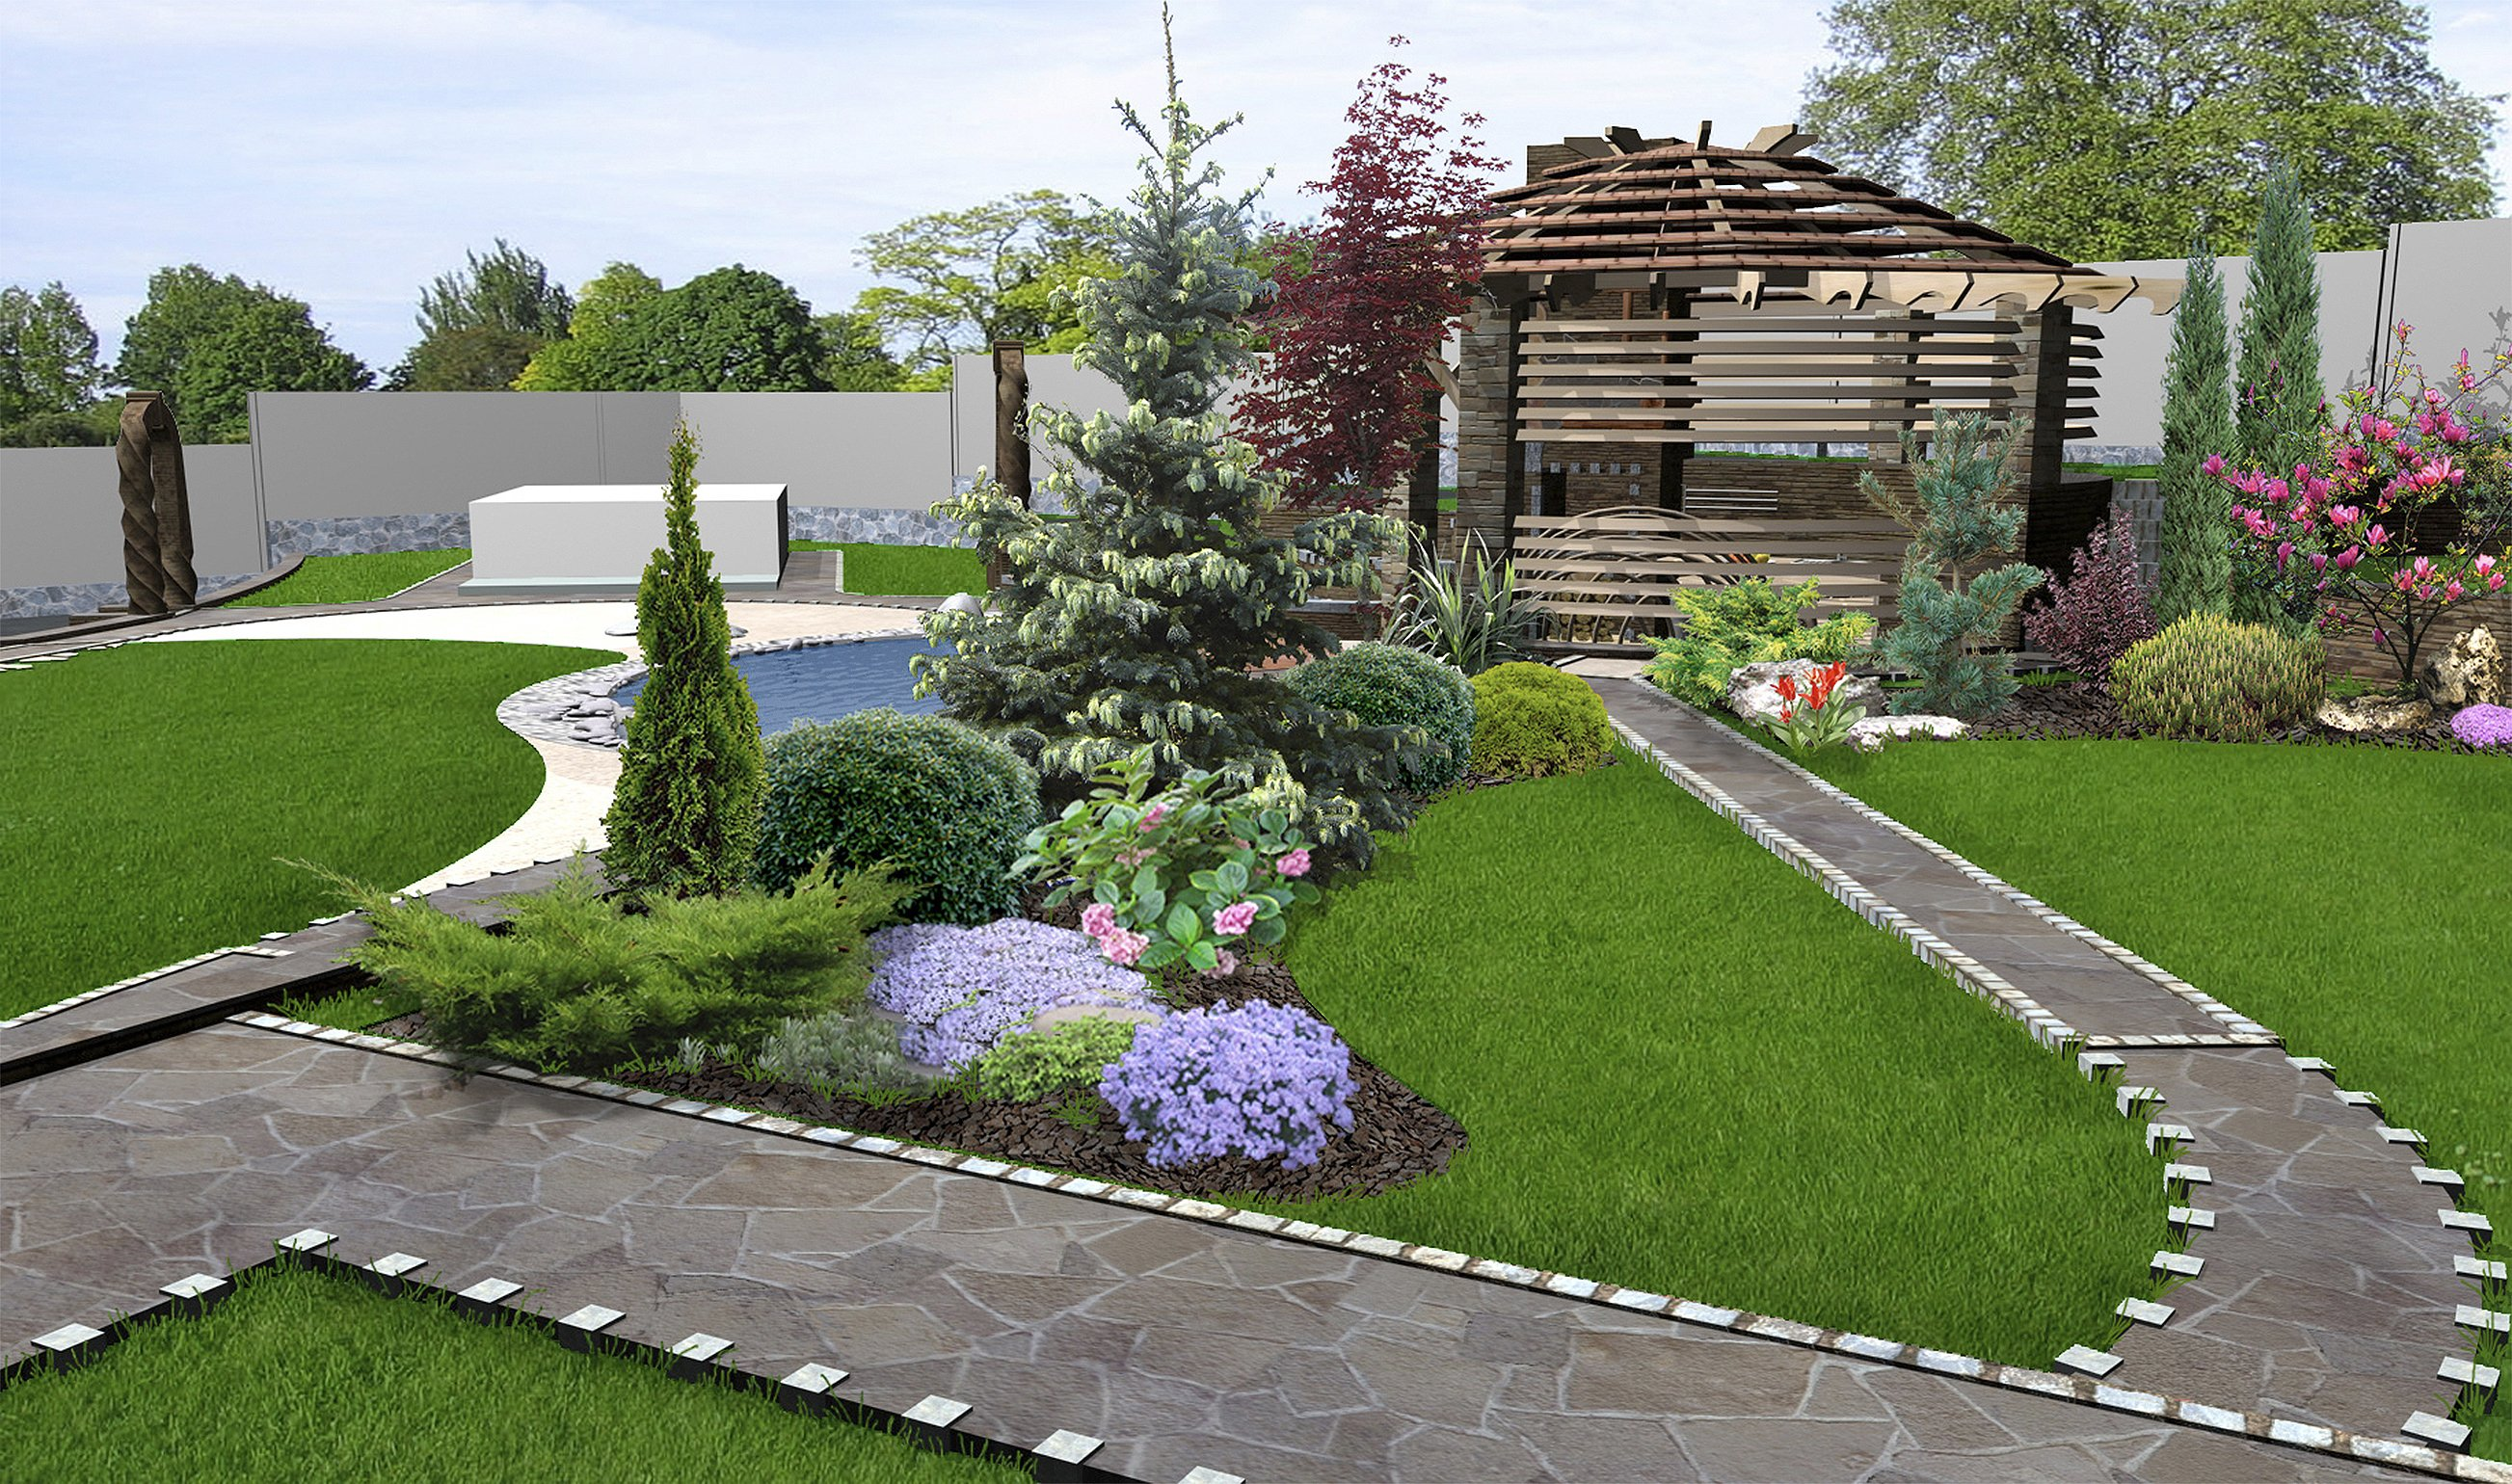 patio-horticultural-background-3d-rendering-76600421